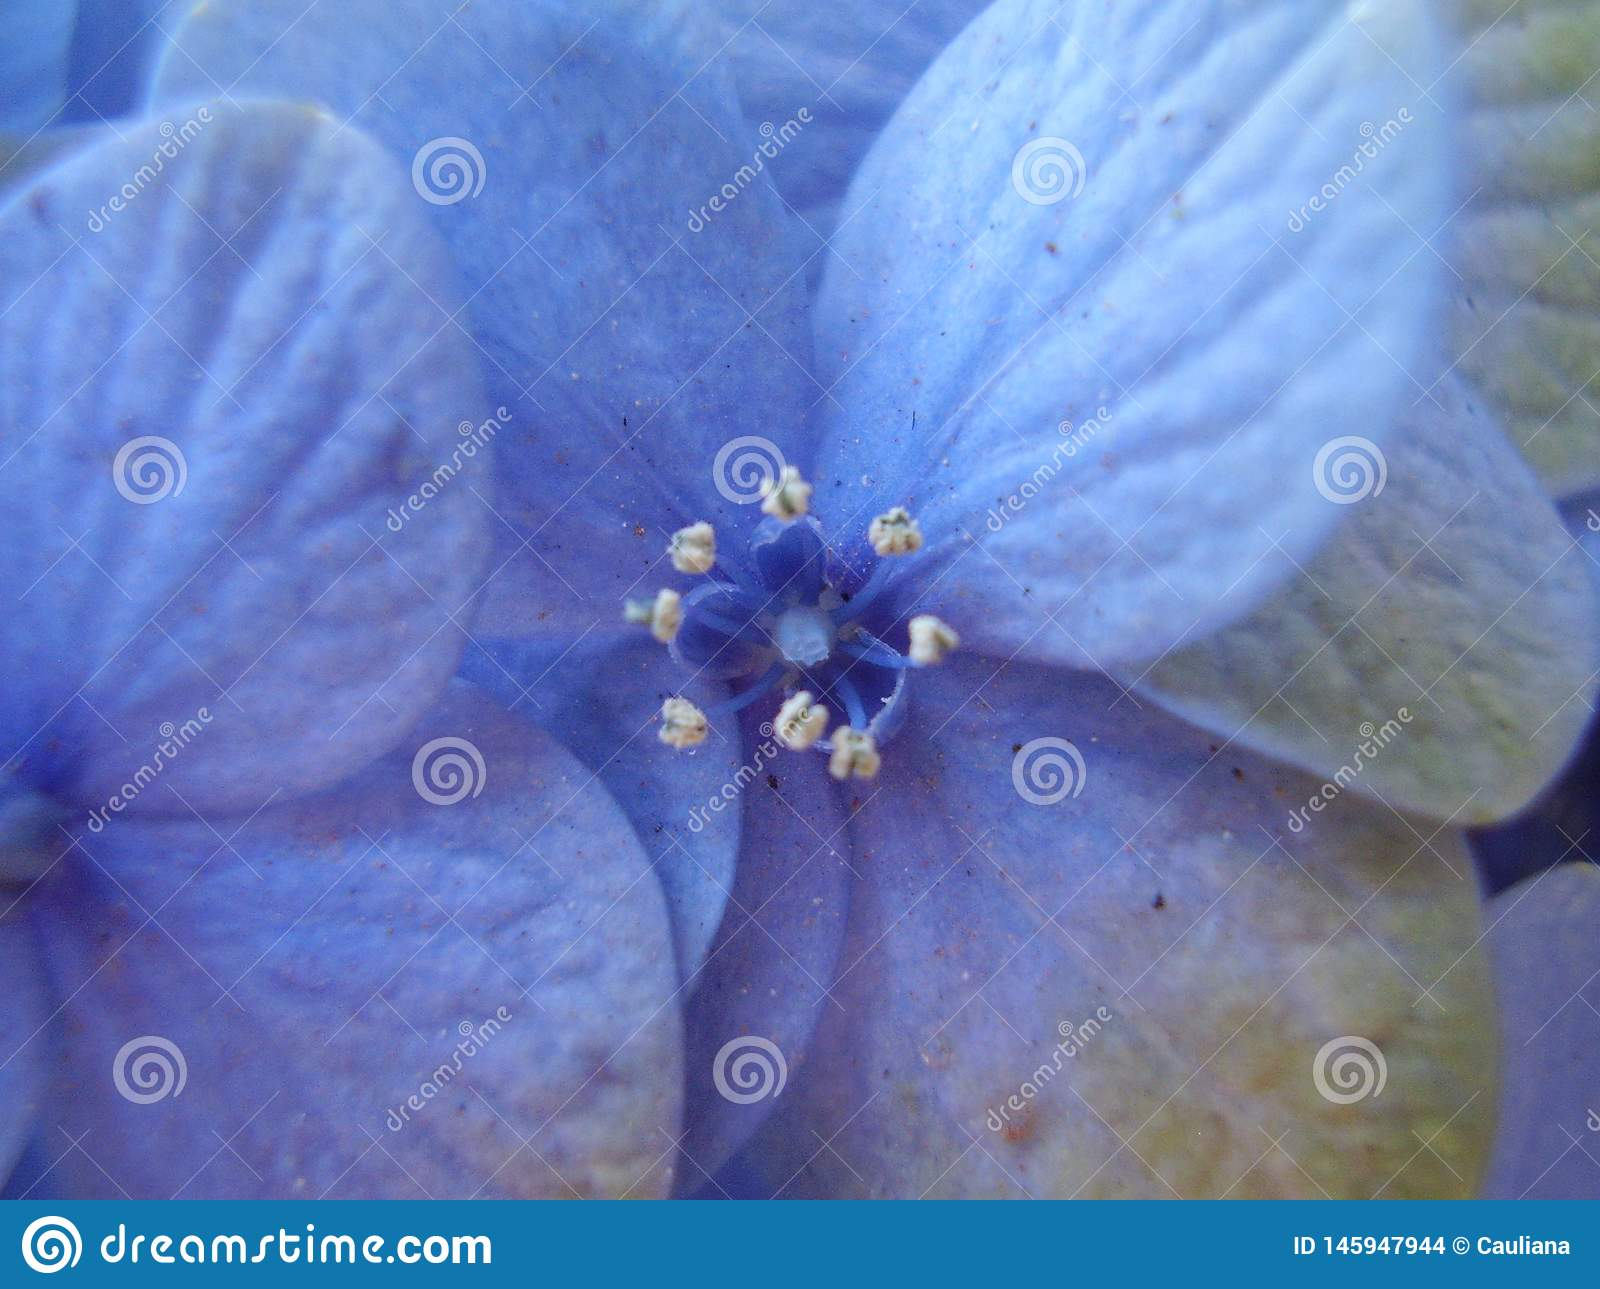 Small blue hydrangea flower close up